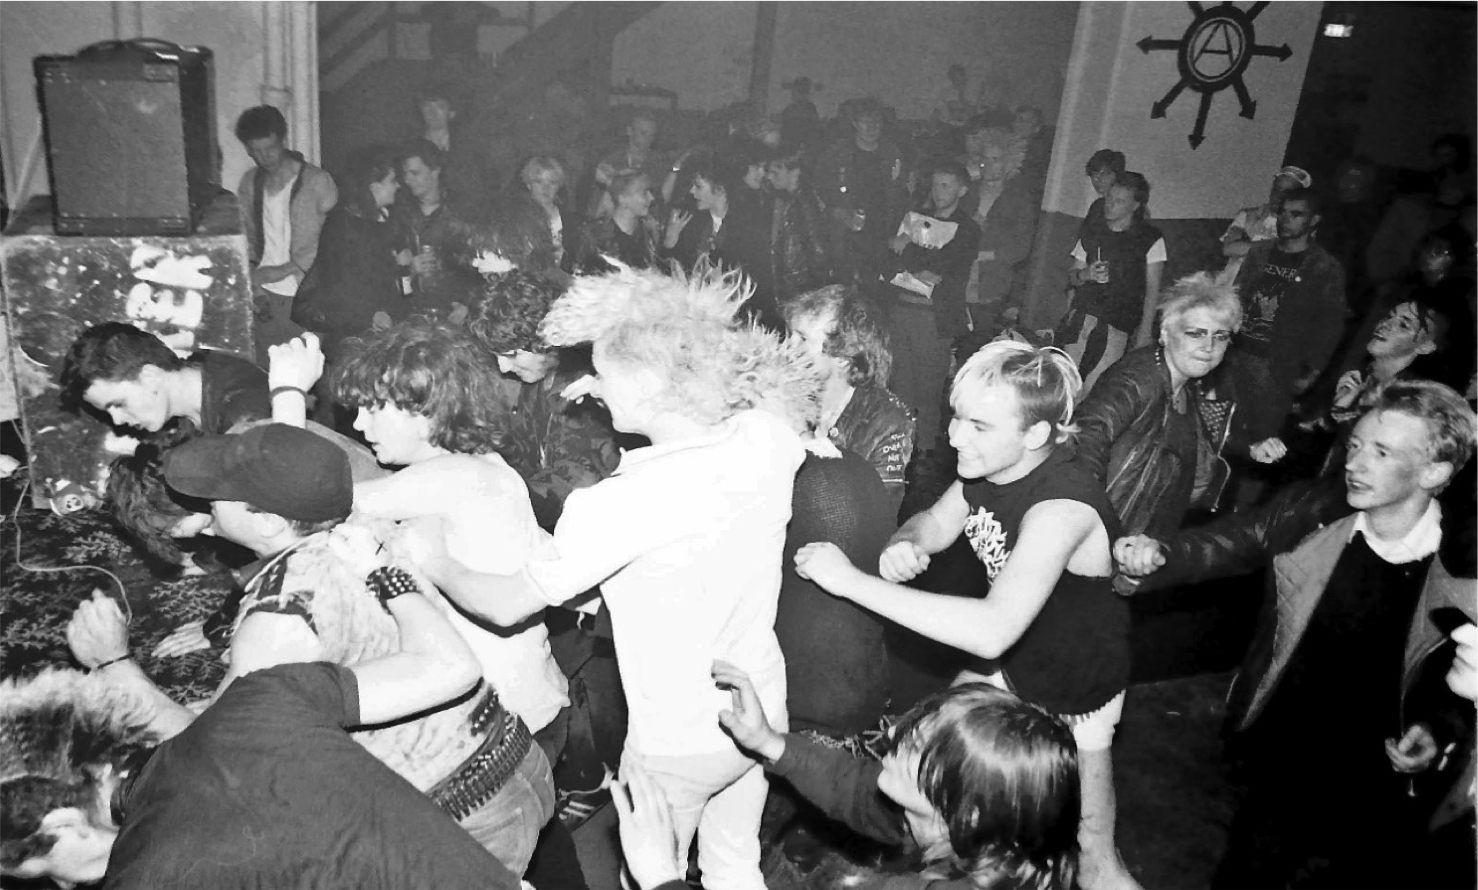 Gig Crowd, Stockton Road Bunker 1984 Image by Andrew Medcalf Logo